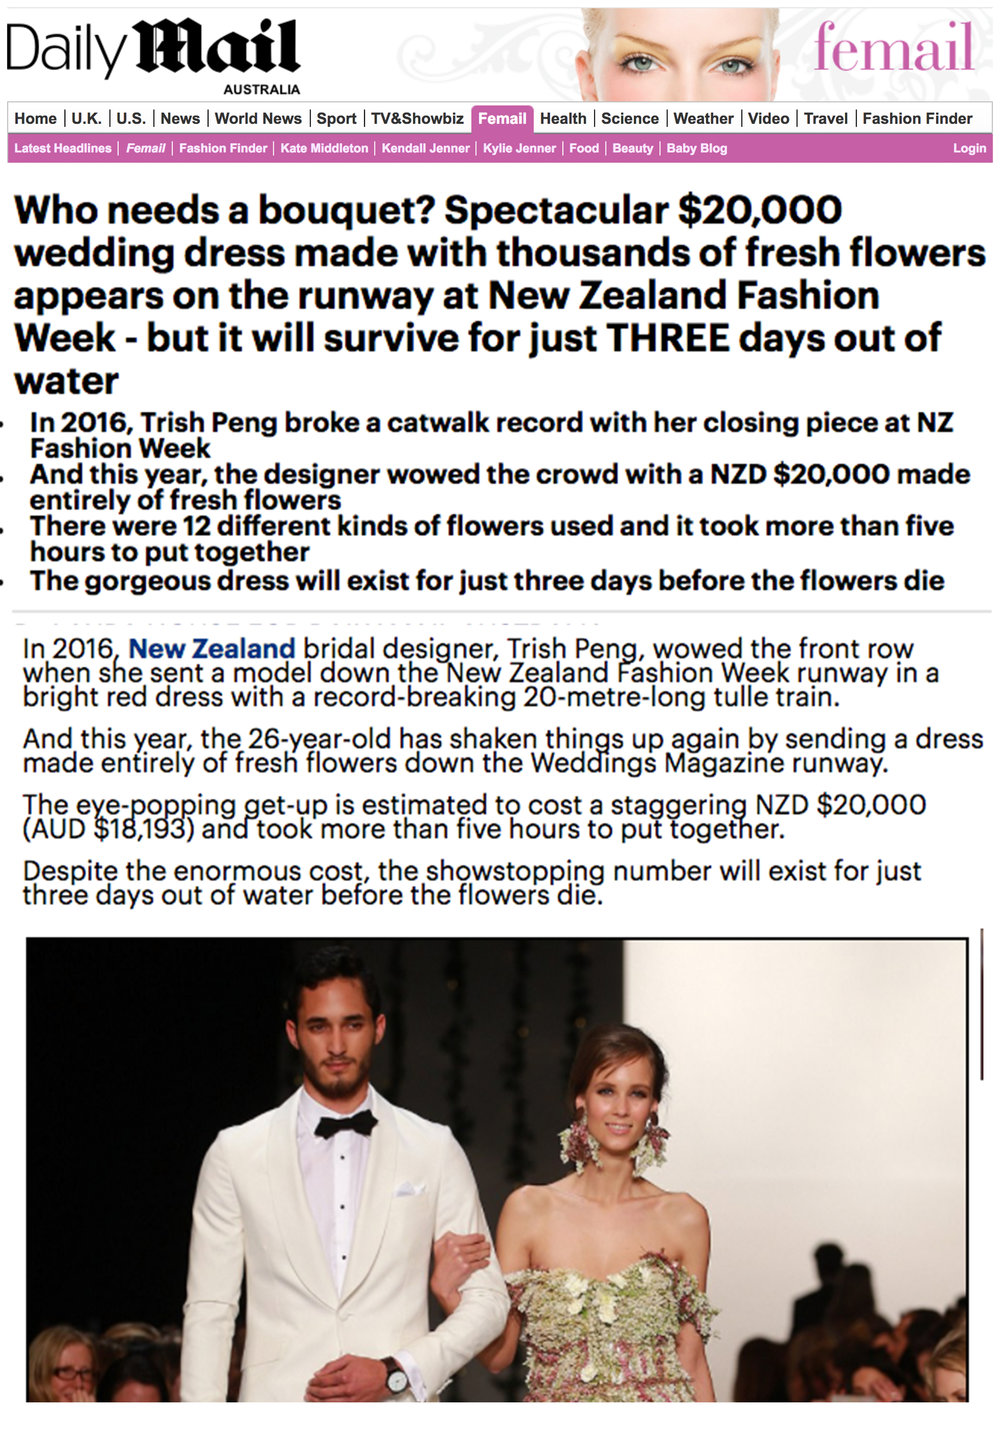 Daily mail flower gown.jpg